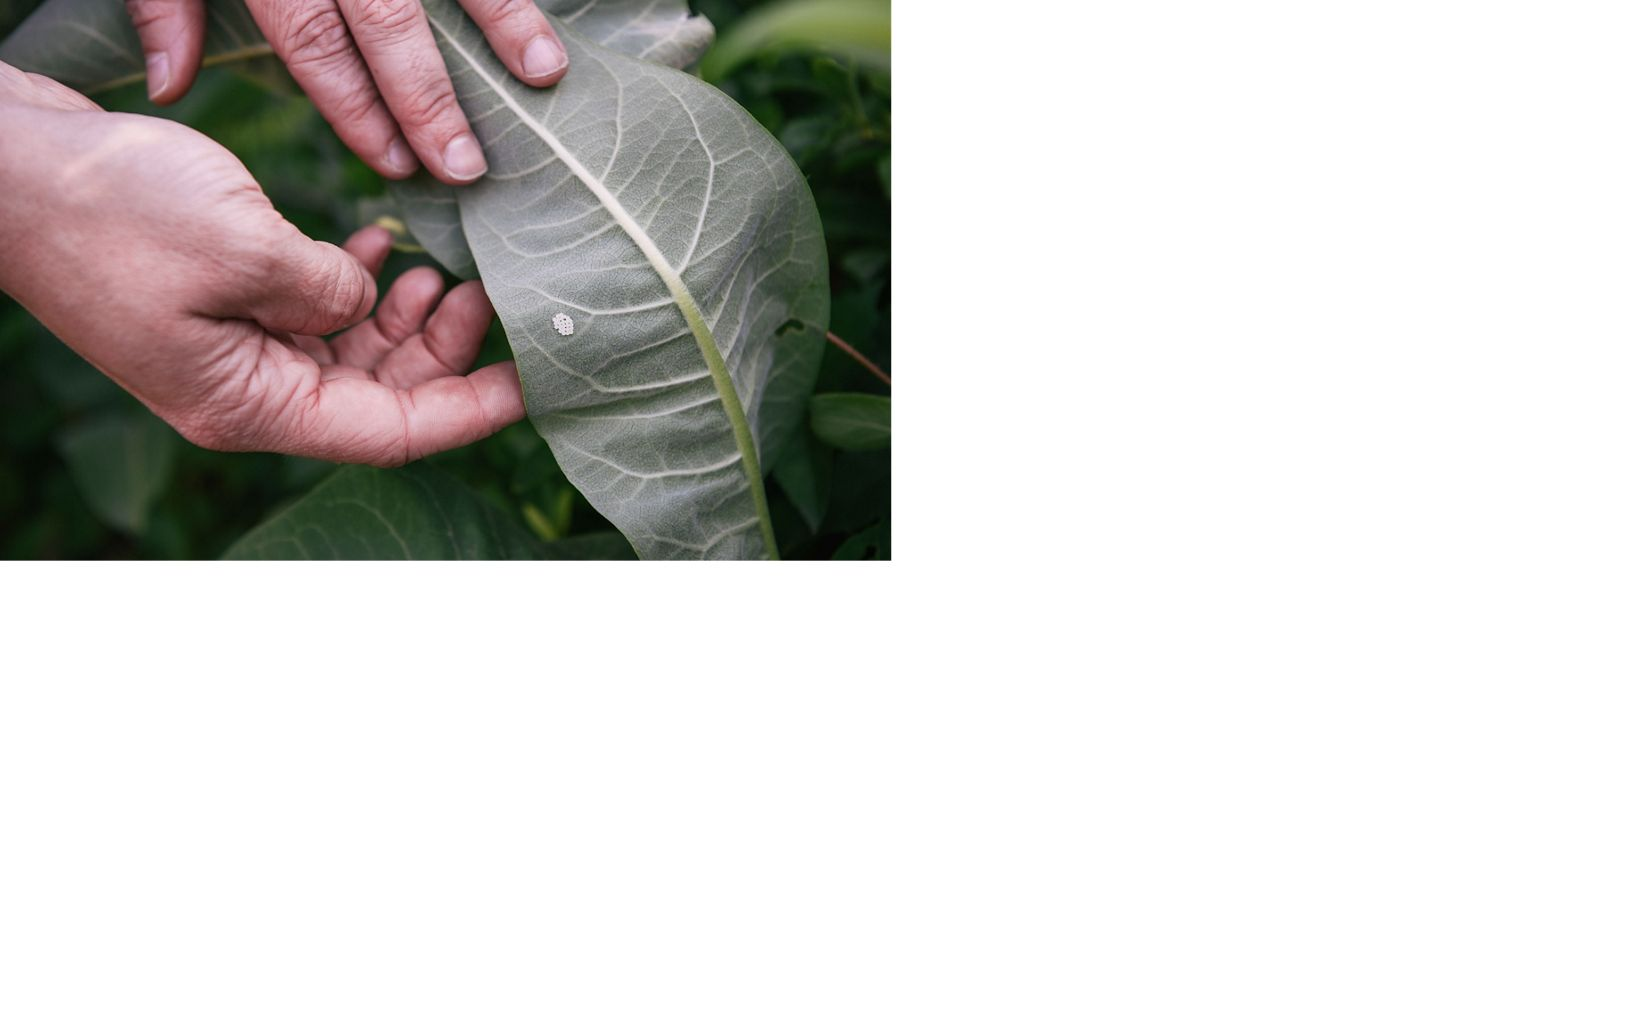 hands touching a large green leaf with a white spot on it